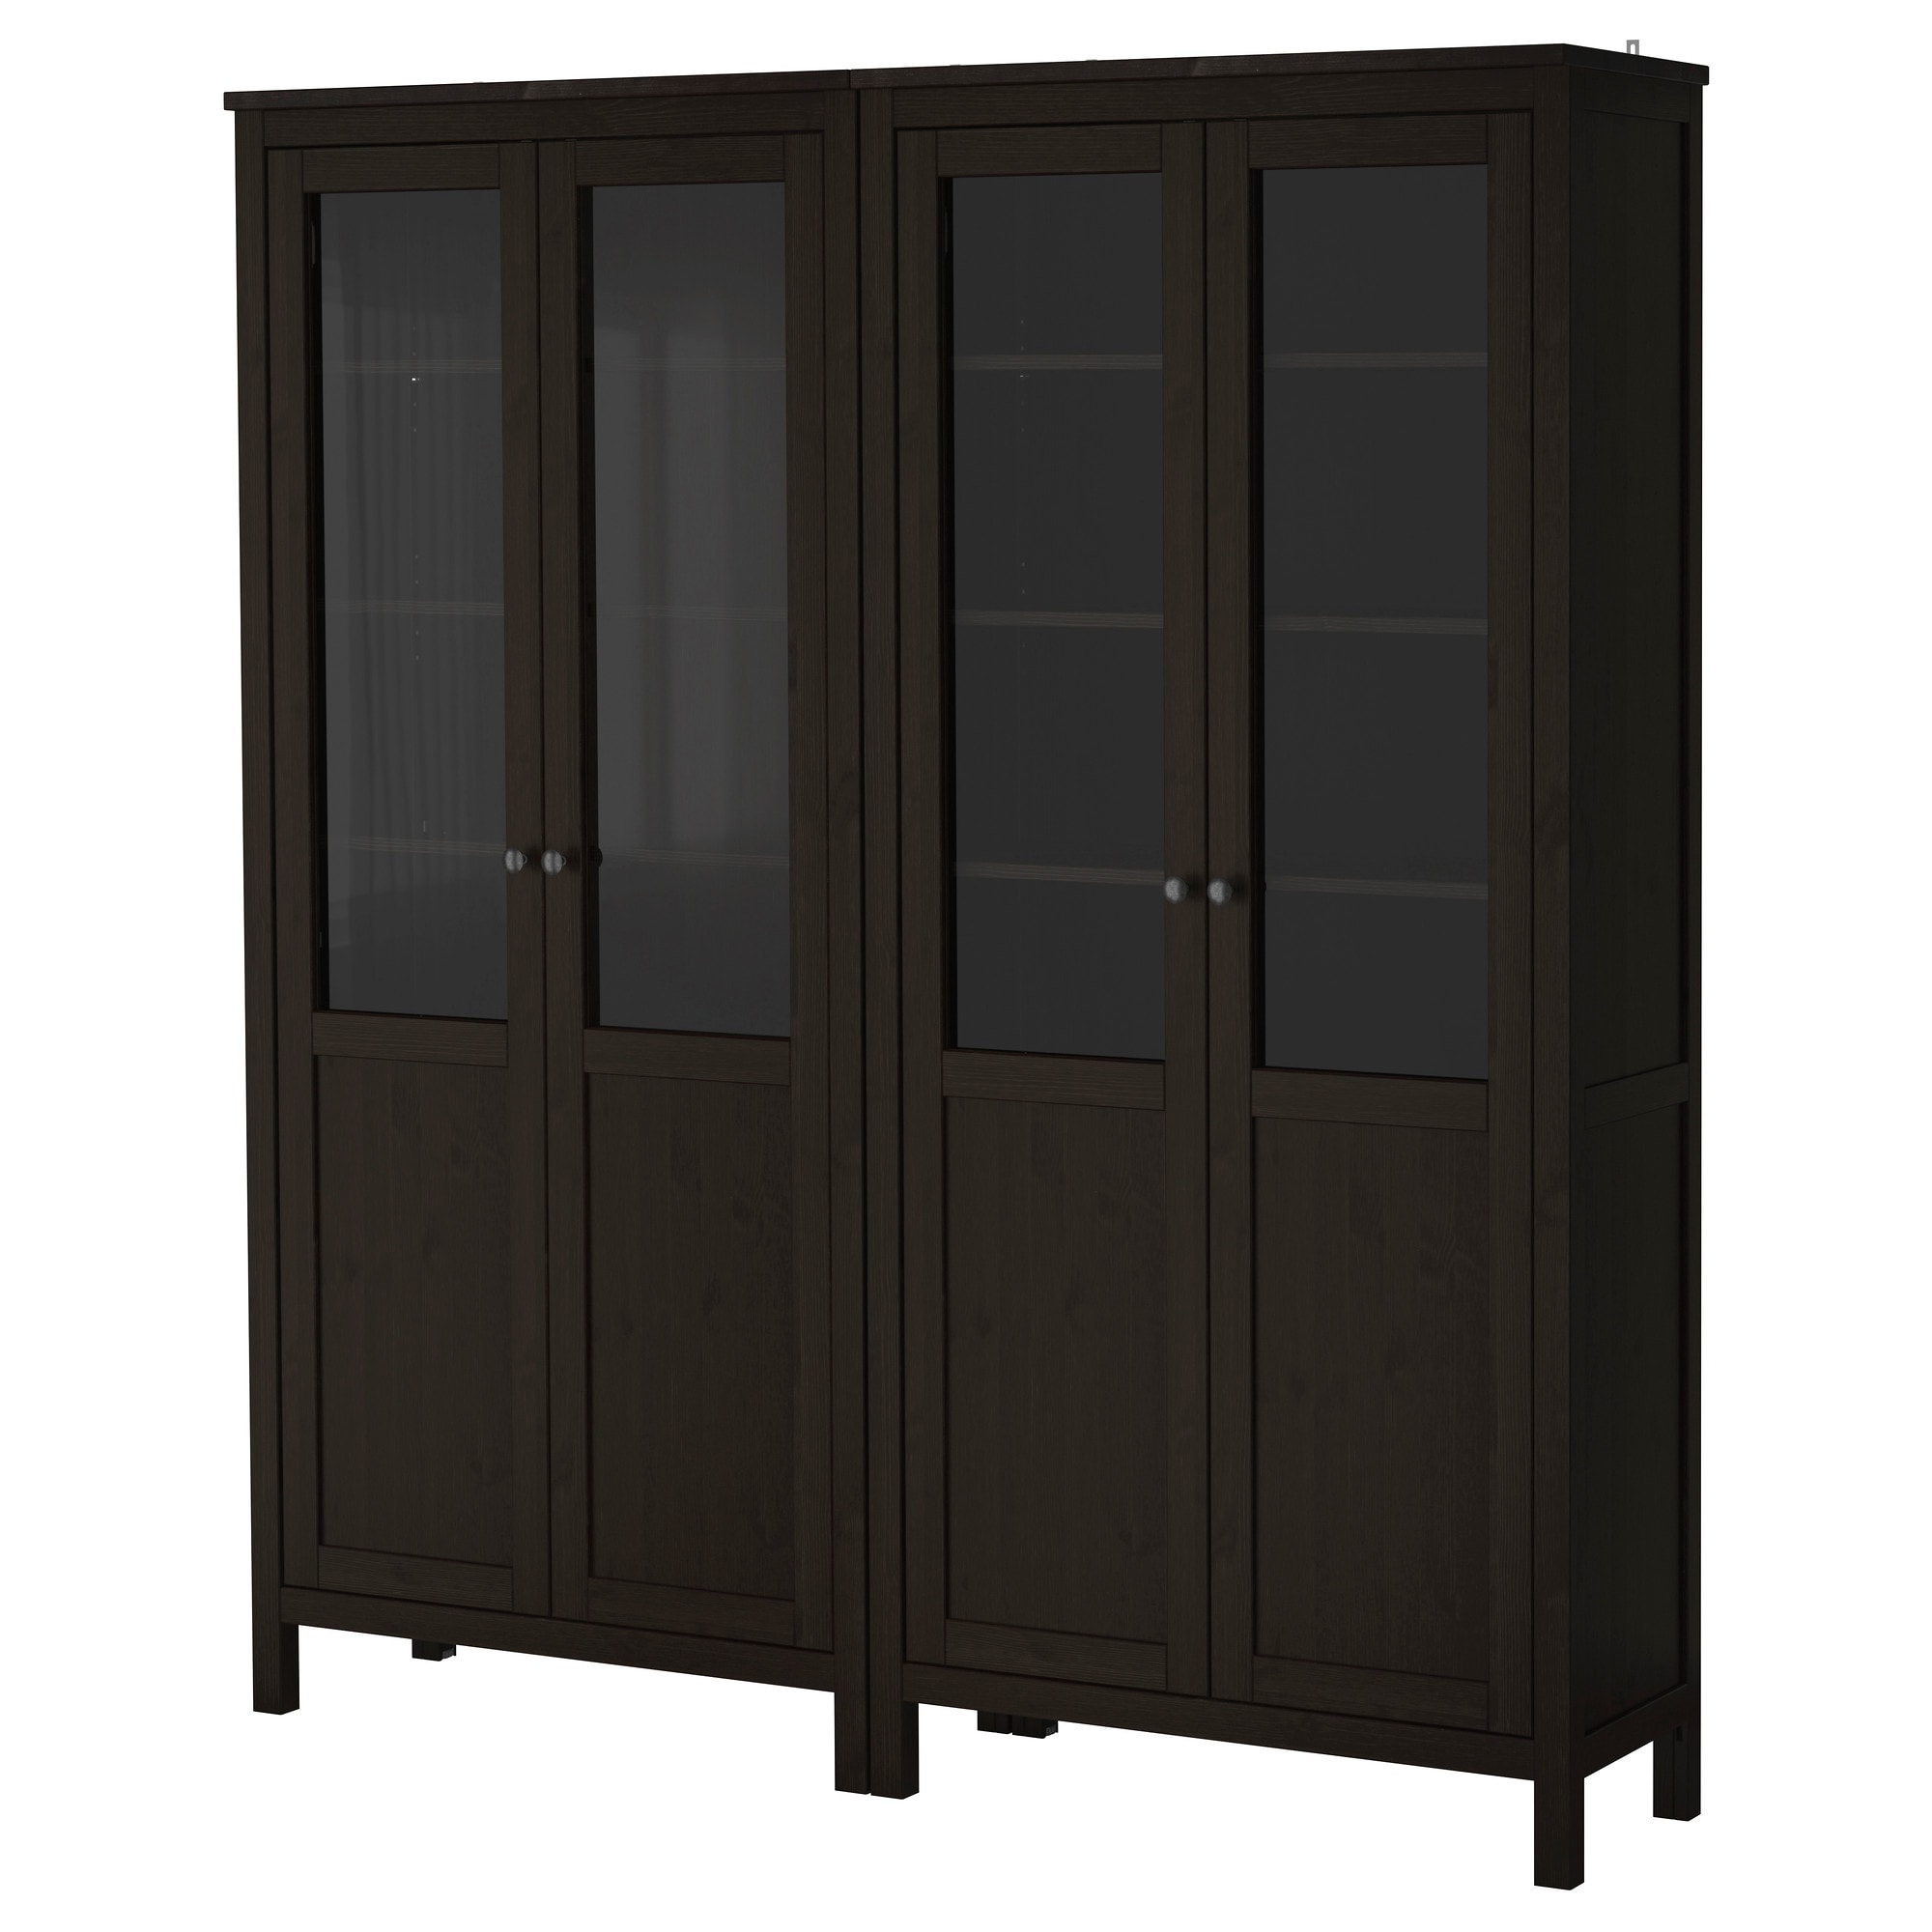 HEMNES Storage Combination W/glass Doors   Black Brown   IKEA